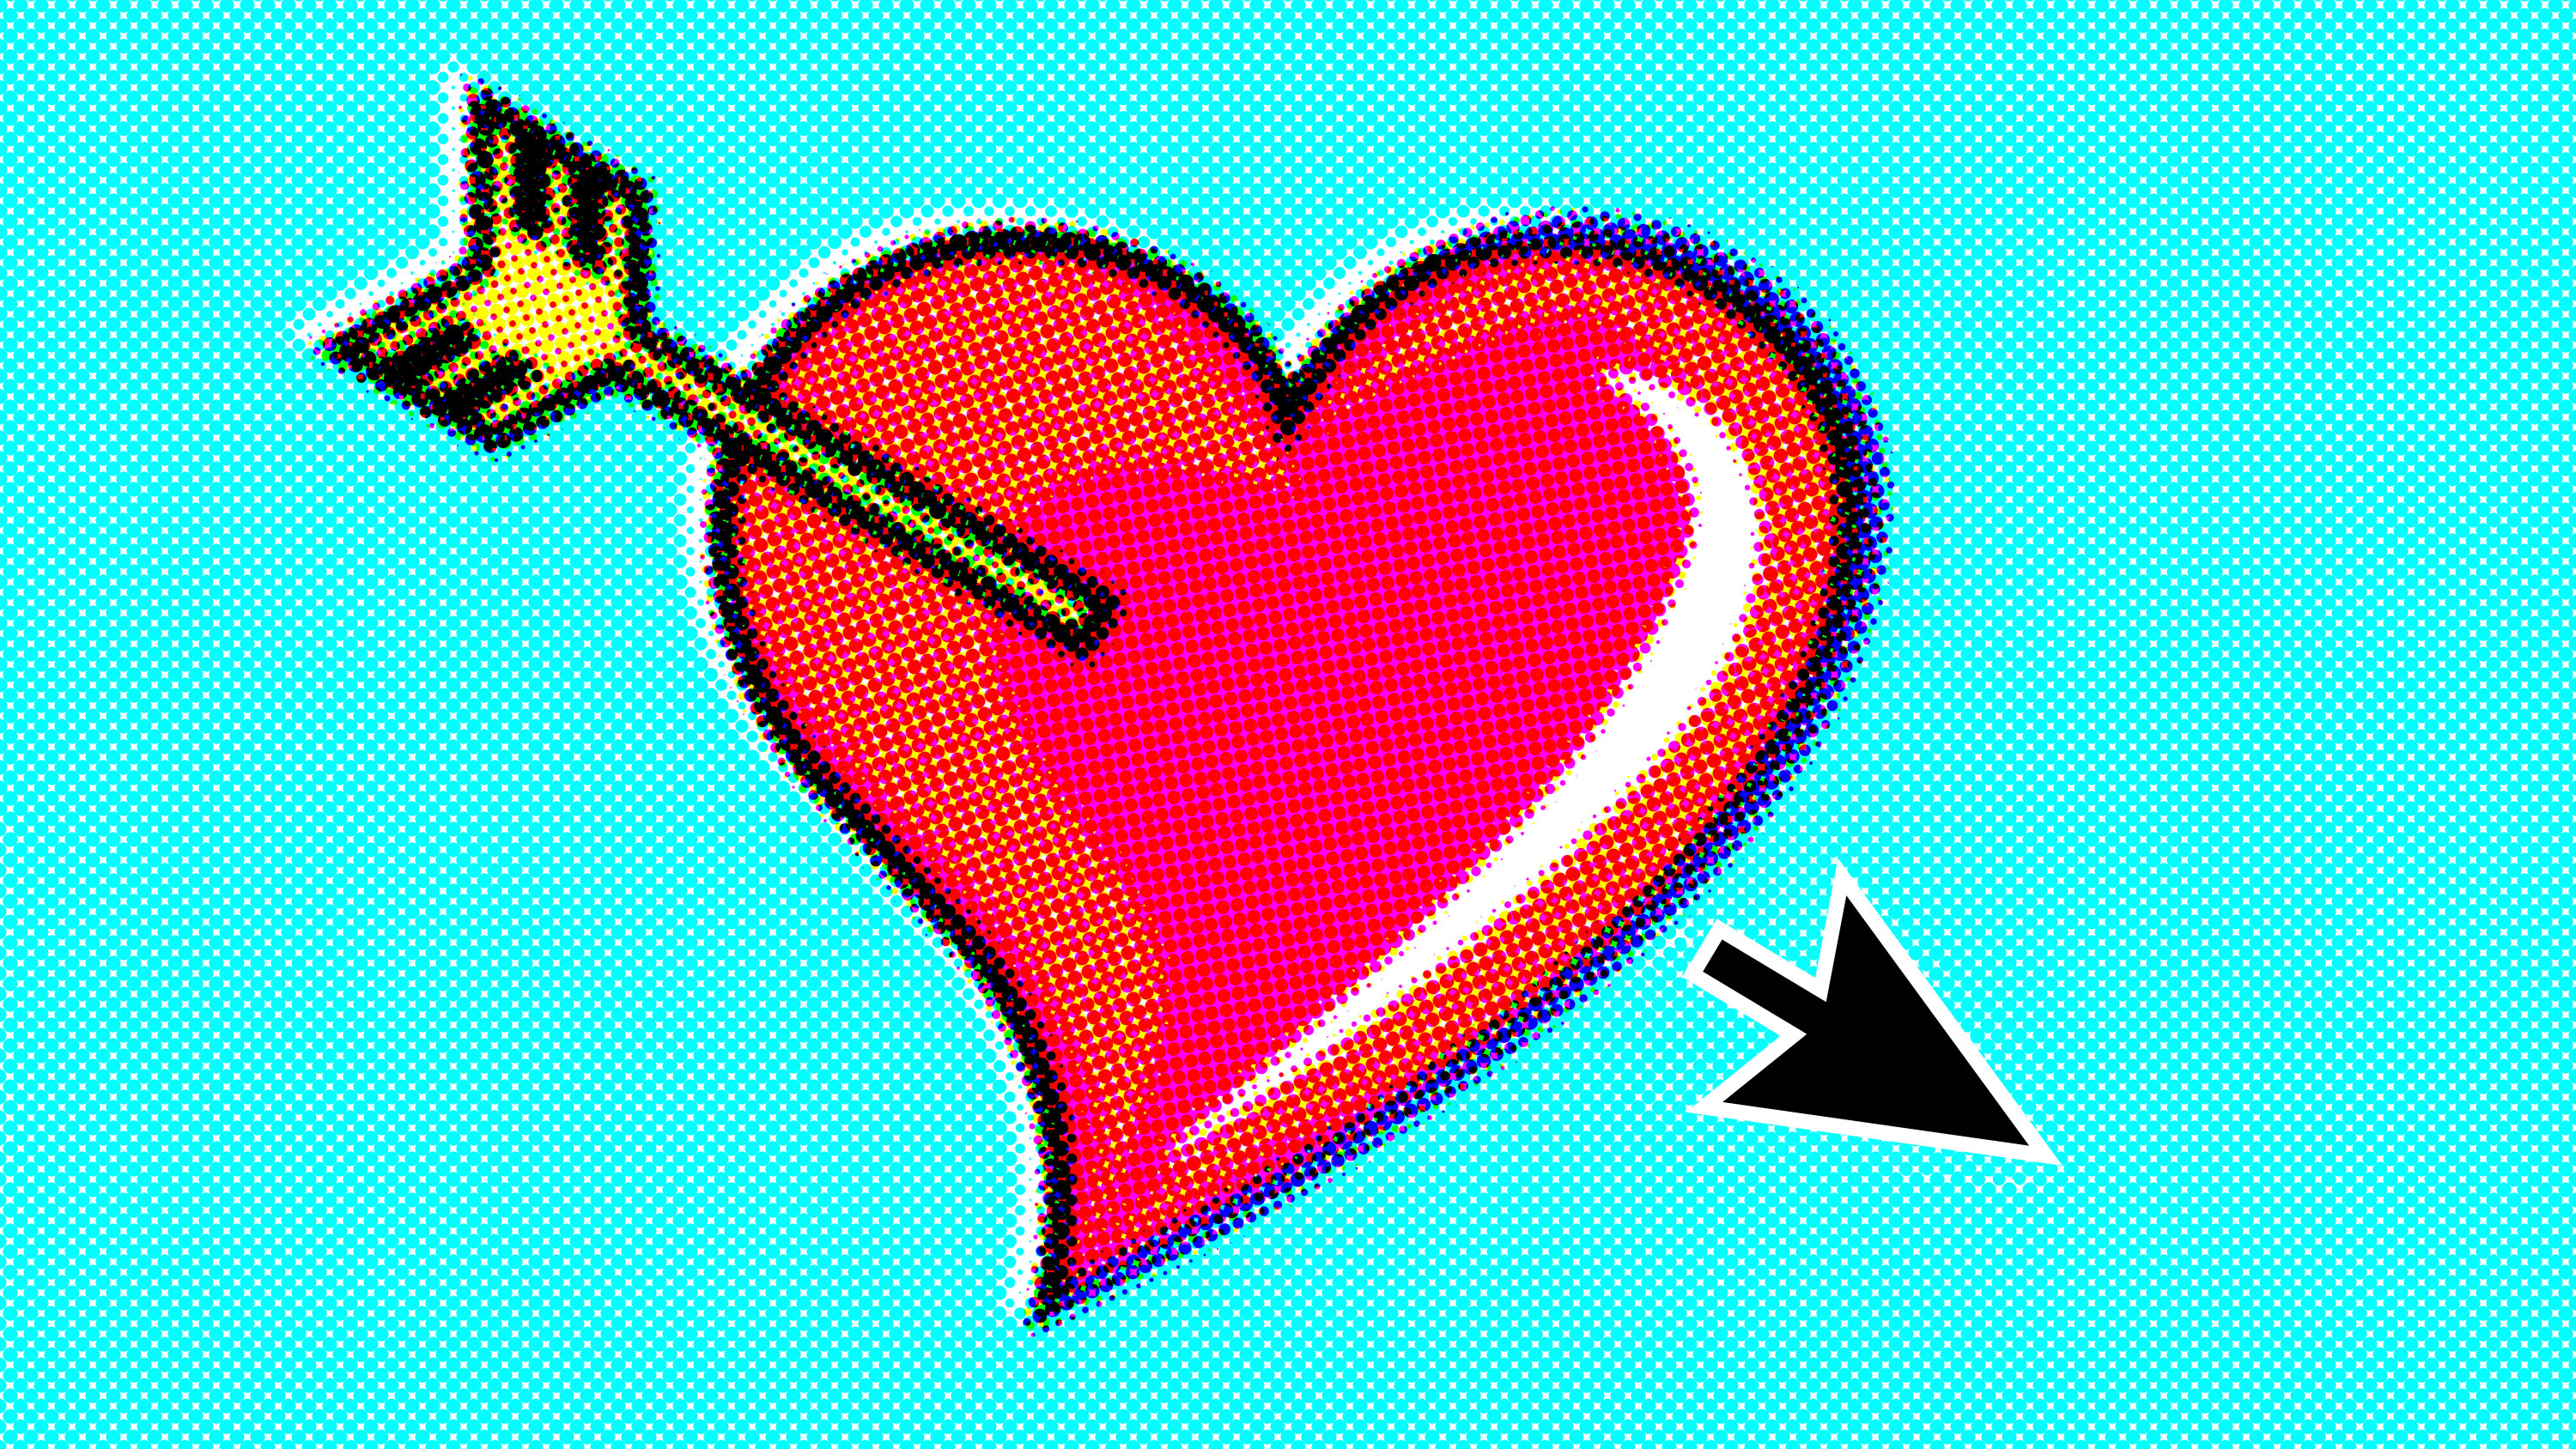 conceptual illustration of a heart with an arrow going in on one side and a cursor coming out on the other